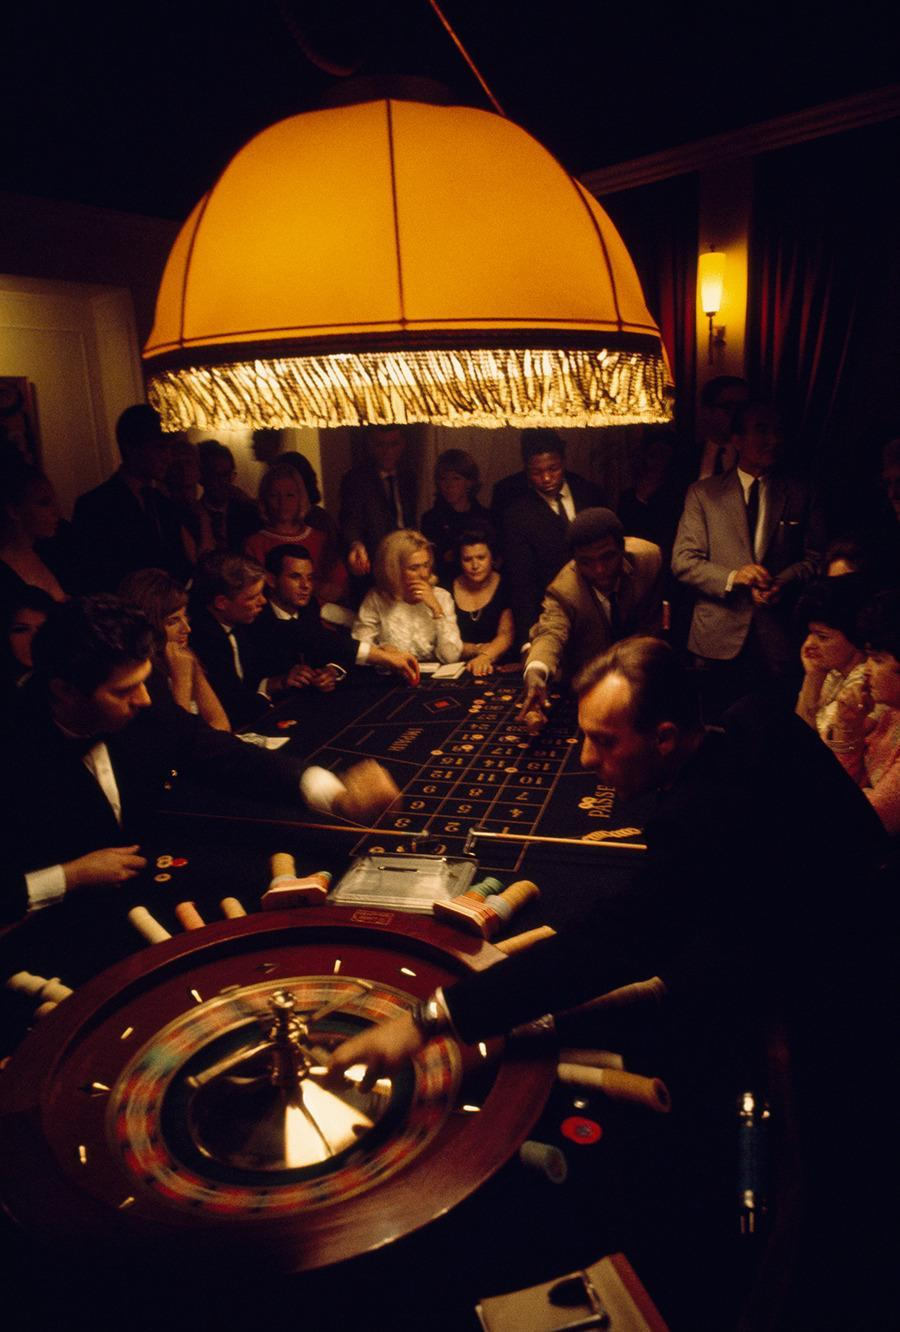 Visitors crowd a casino roulette table in Swaziland, 1969.